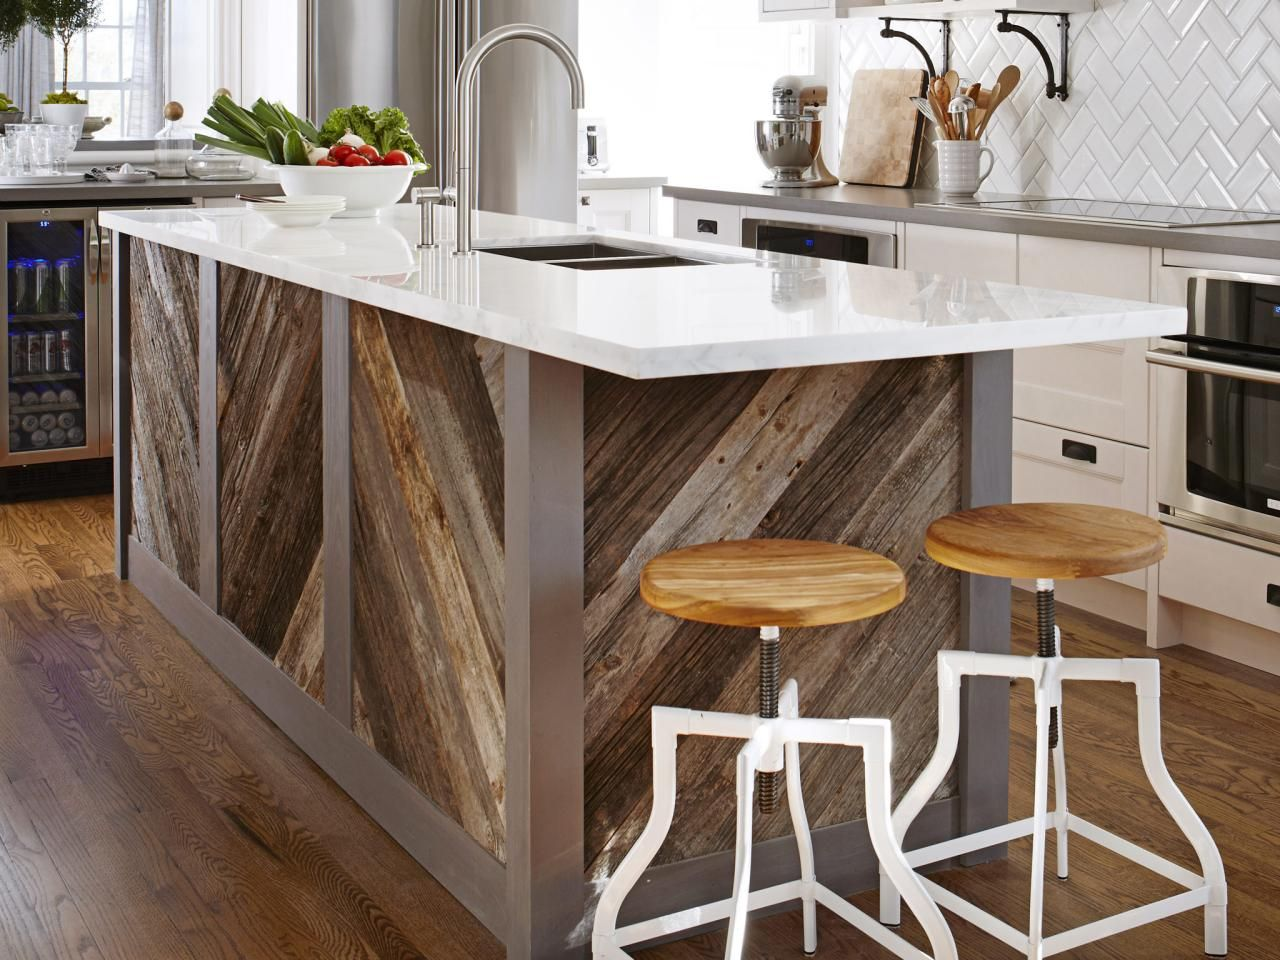 Unfinished Kitchen Islands Pictures Ideas From Hgtv Kitchen Island With Sink Kitchen Island With Sink And Dishwasher Wood Kitchen Island